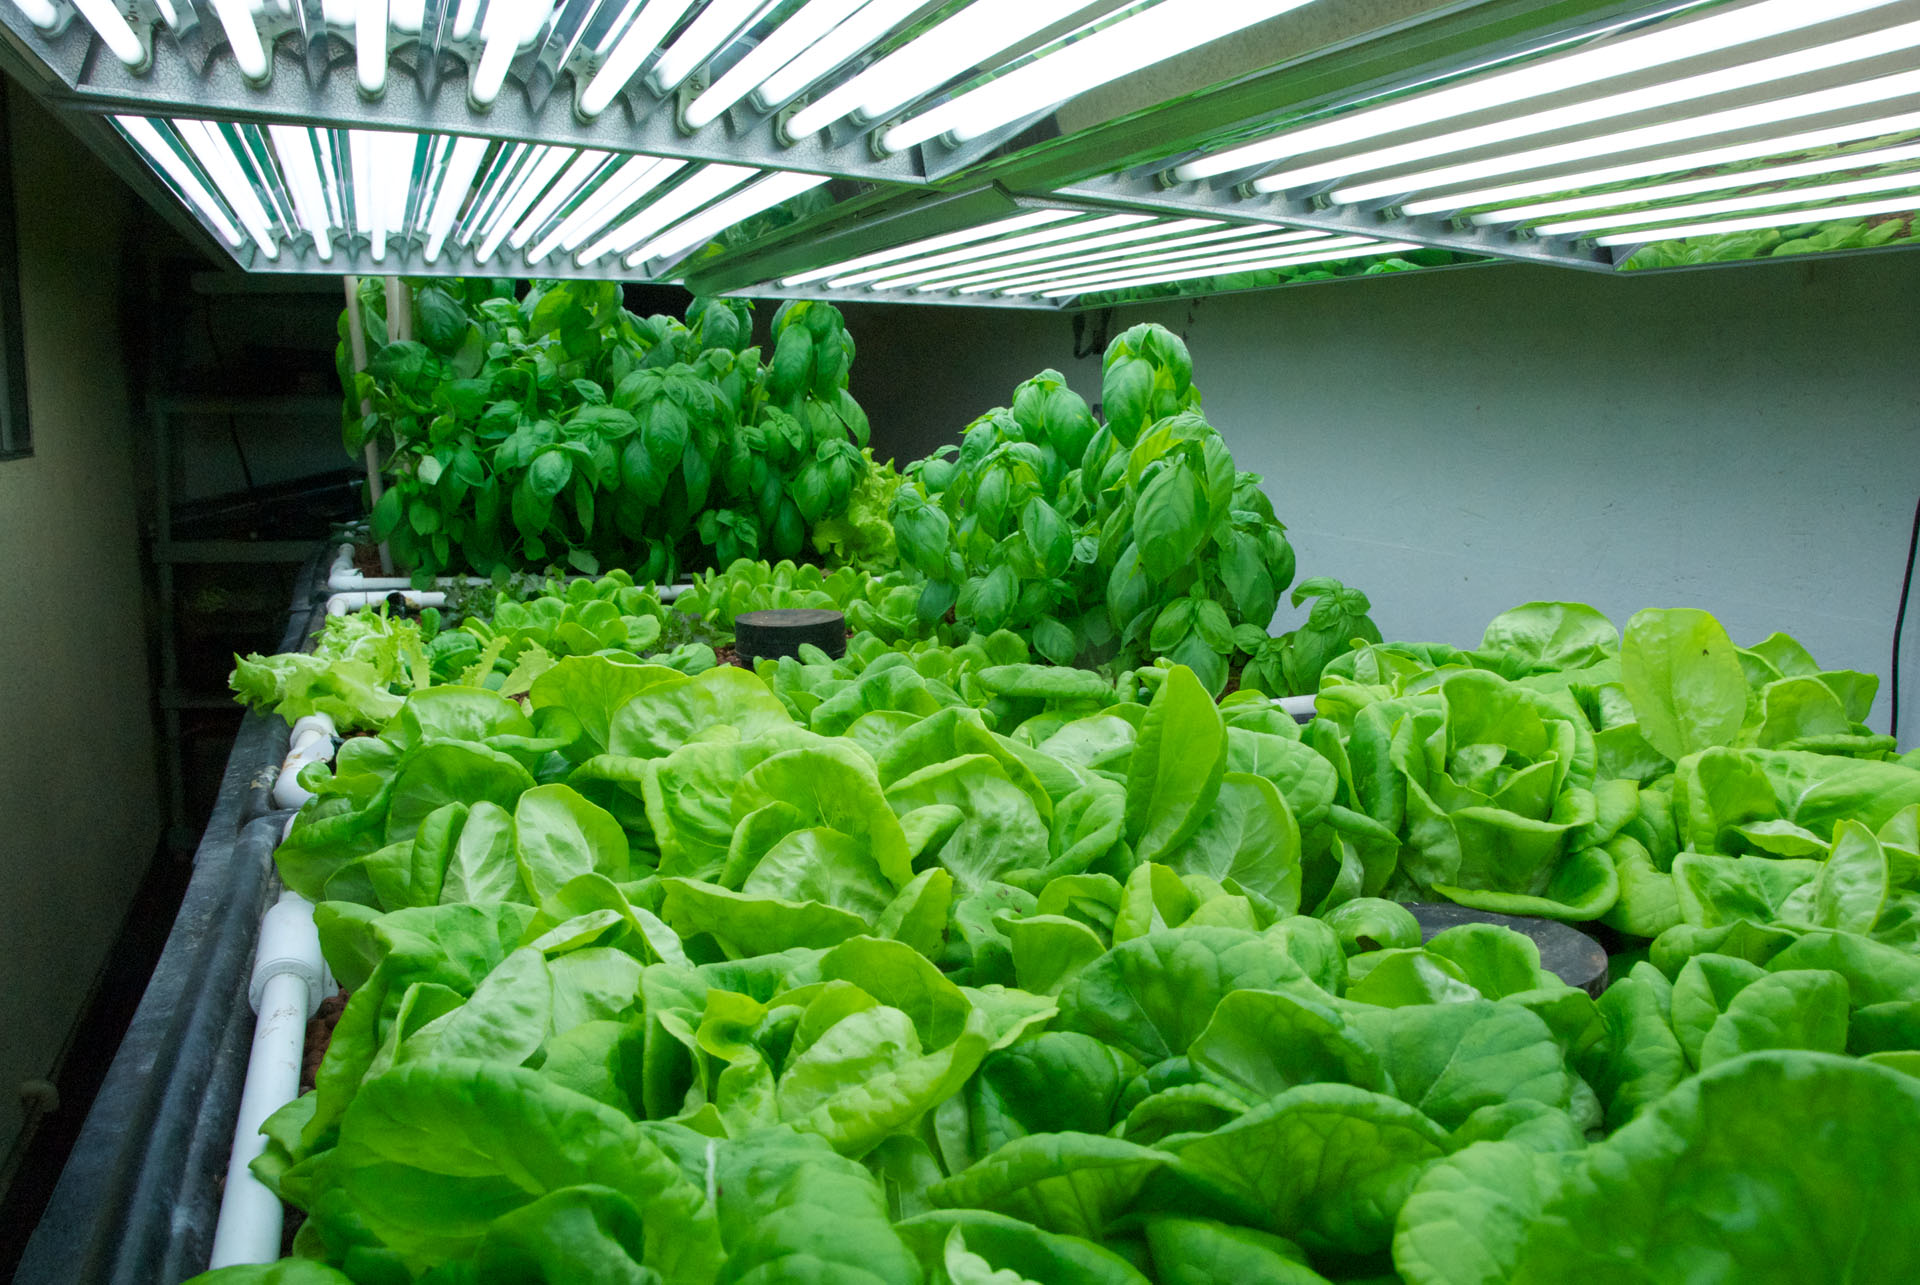 Grow Lights For Indoor Plants 11 Tips For Growing Lettuce Indoors In Containers Gardenoid